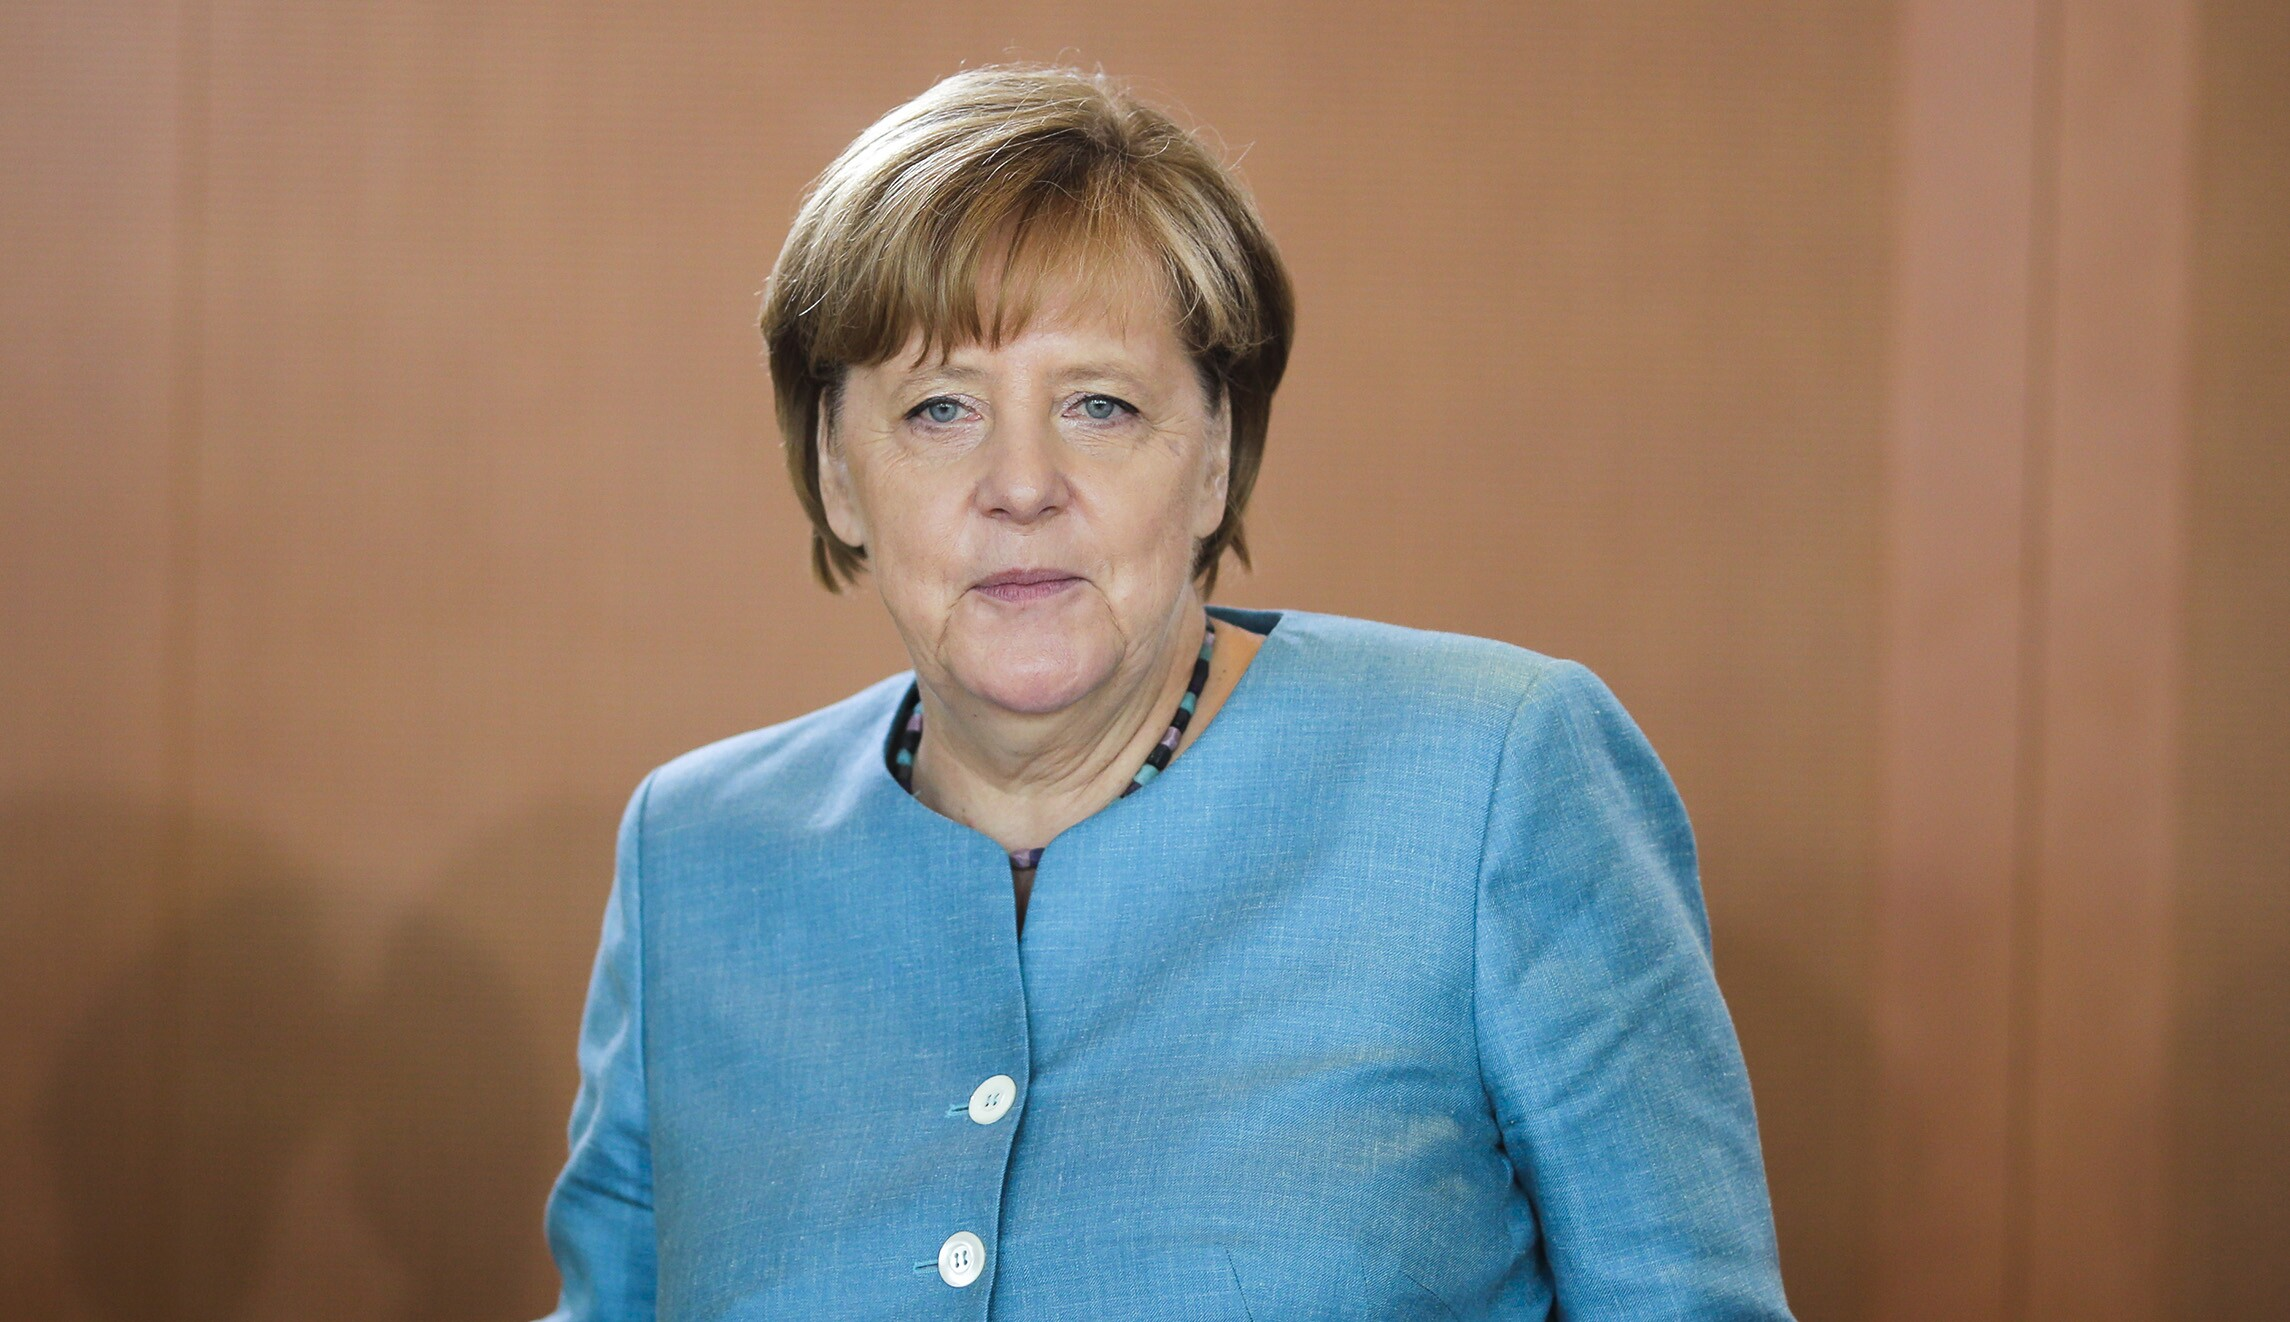 Angela Merkel On North Korea Escalating The Rhetoric Is The Wrong